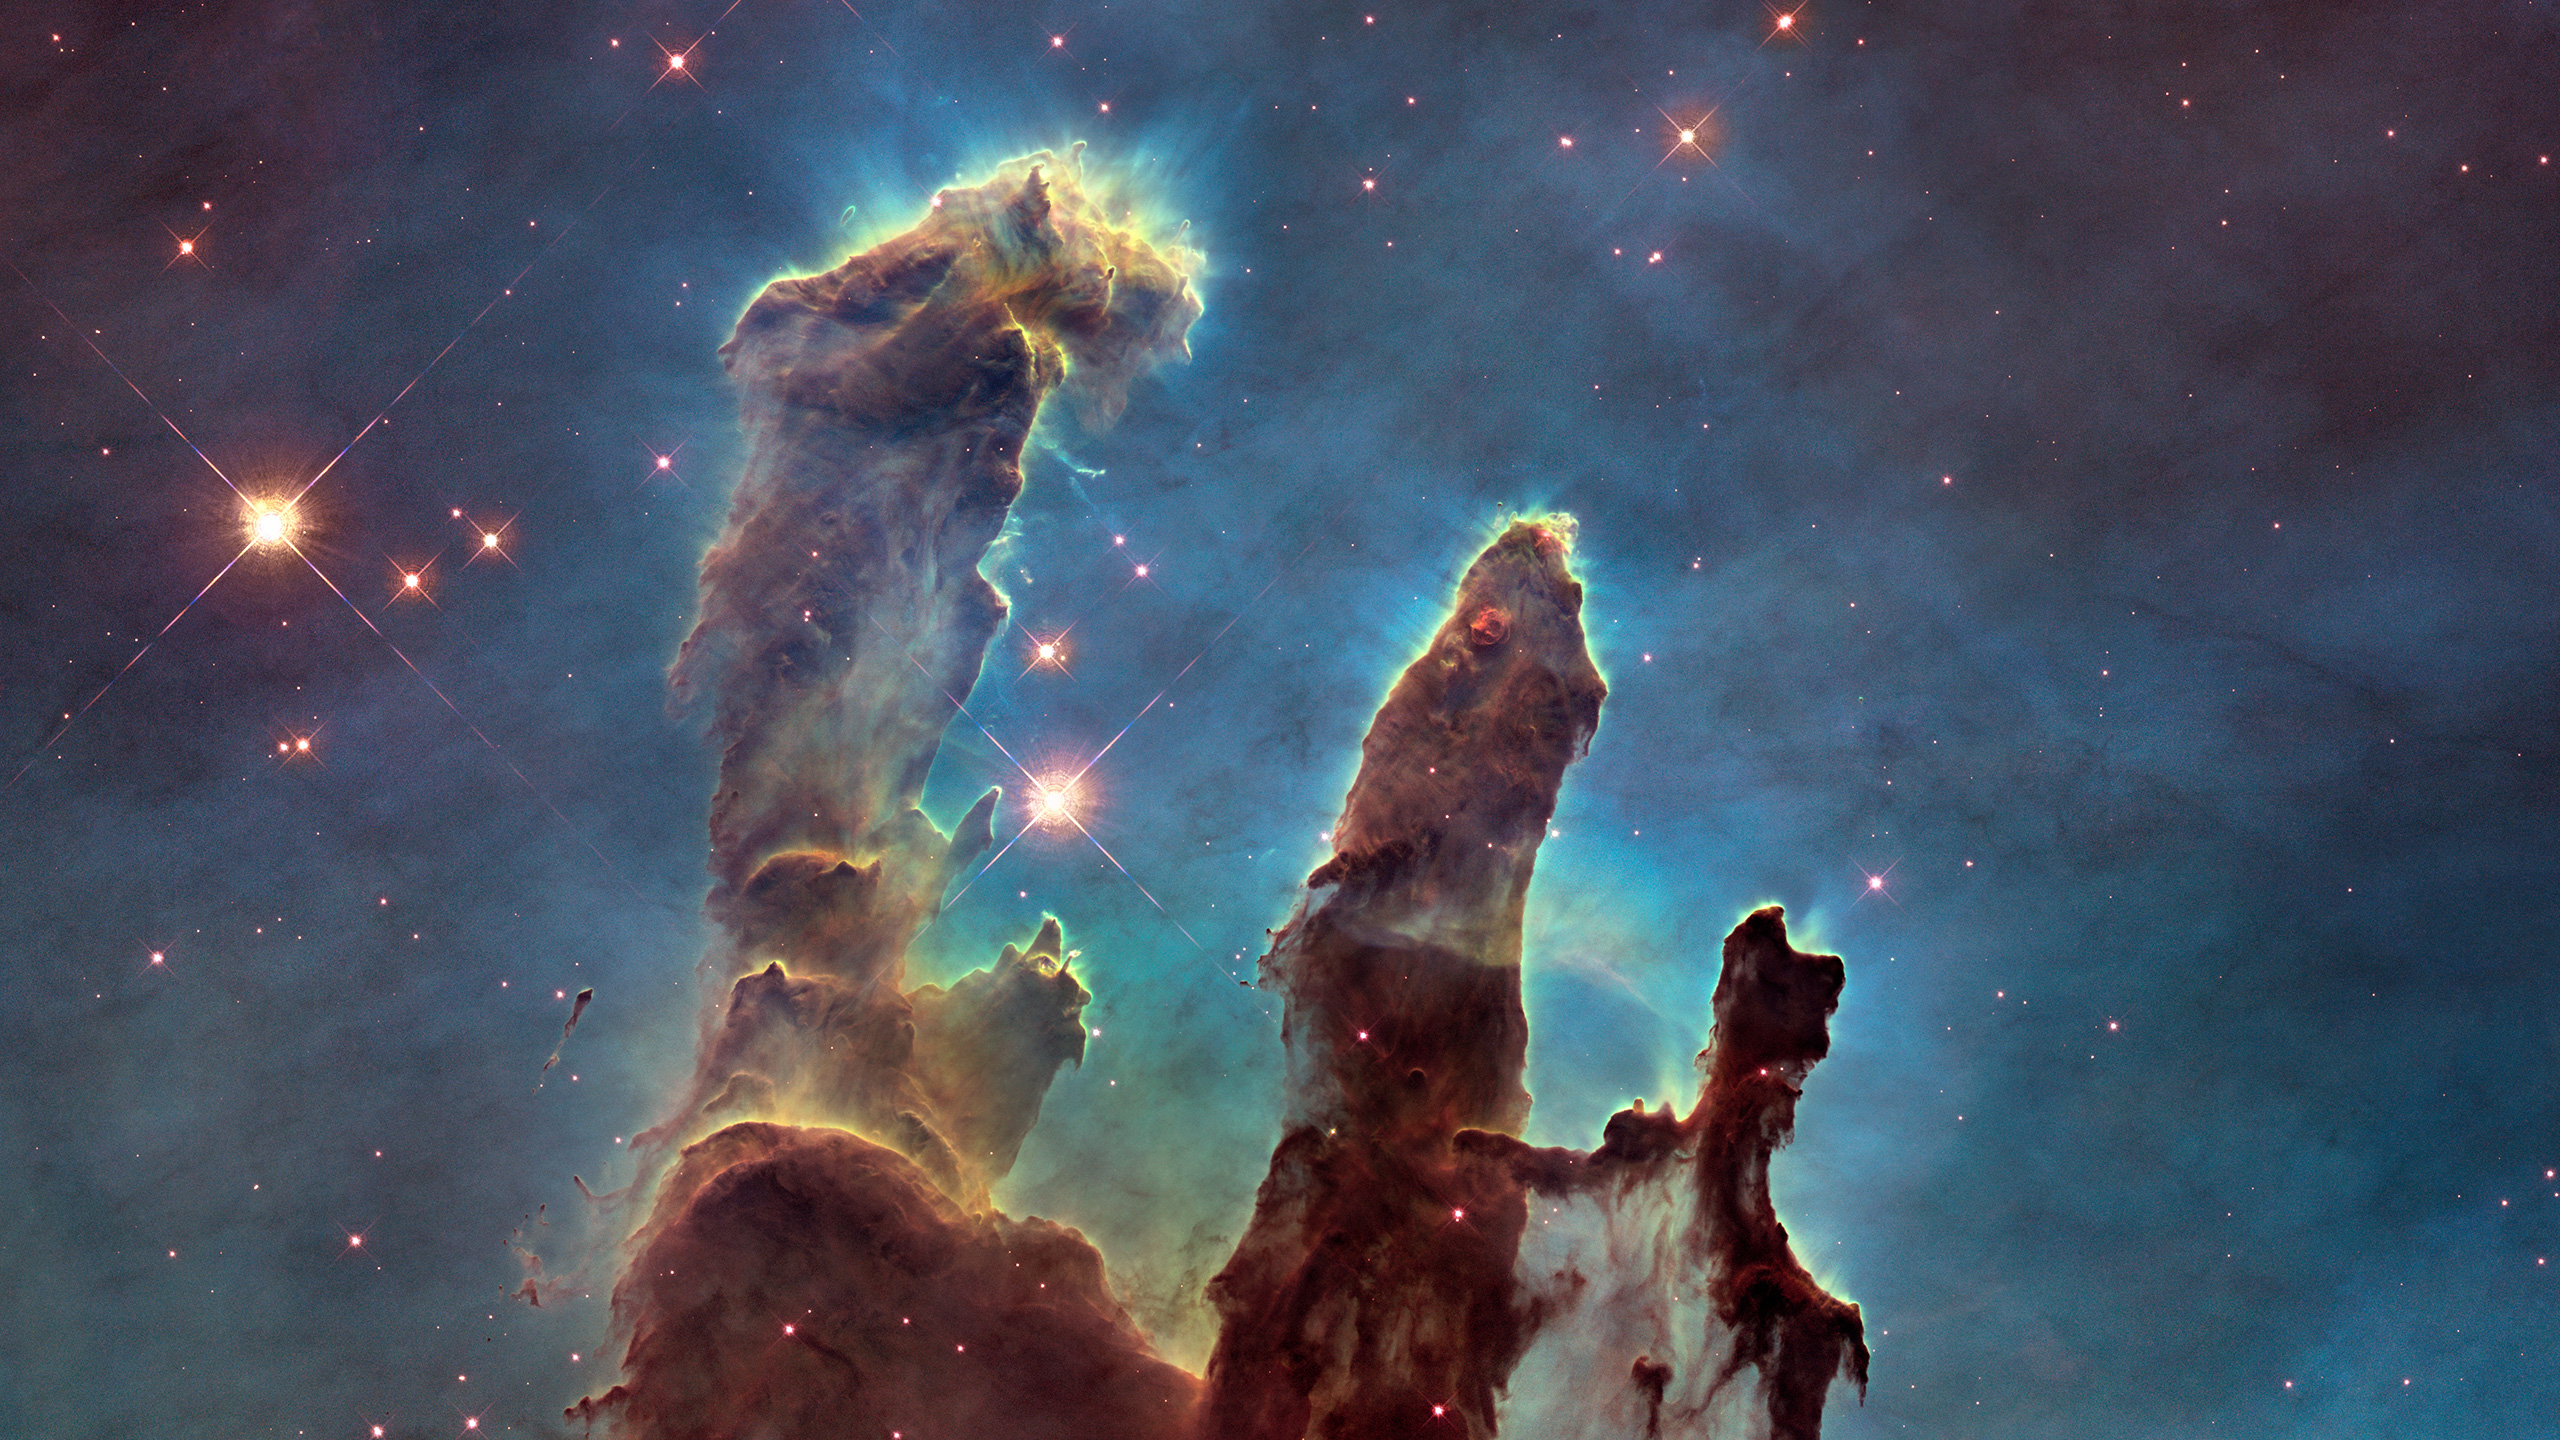 General 2560x1440 Pillars of Creation space stars nebula